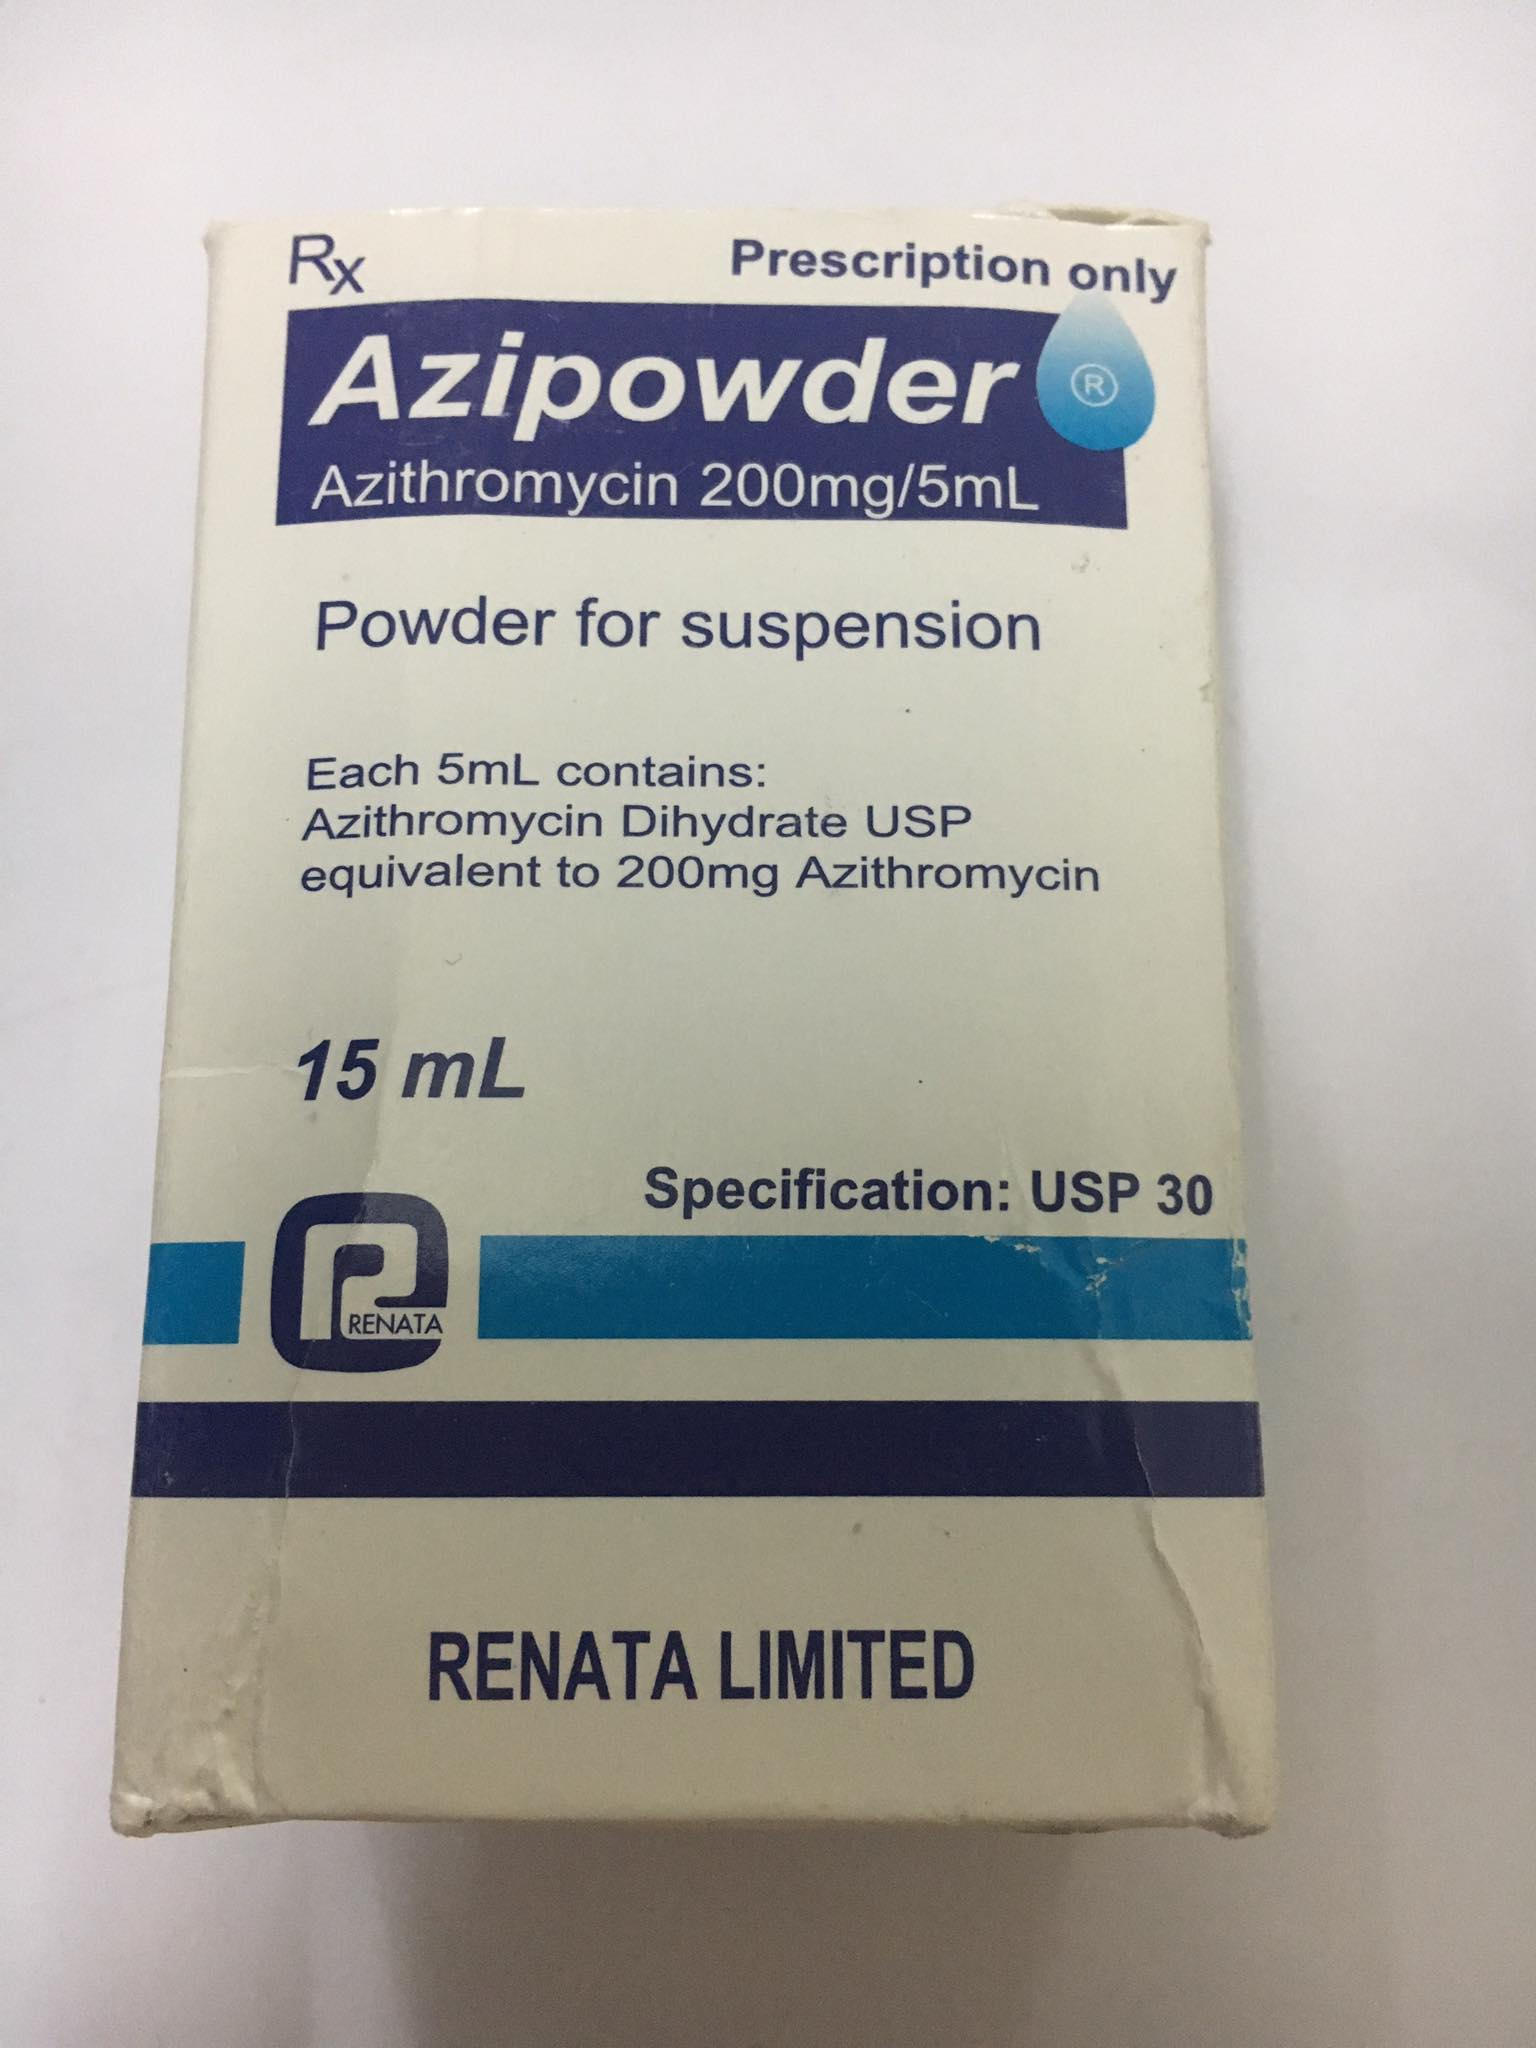 Azipowder 200mg/5ml